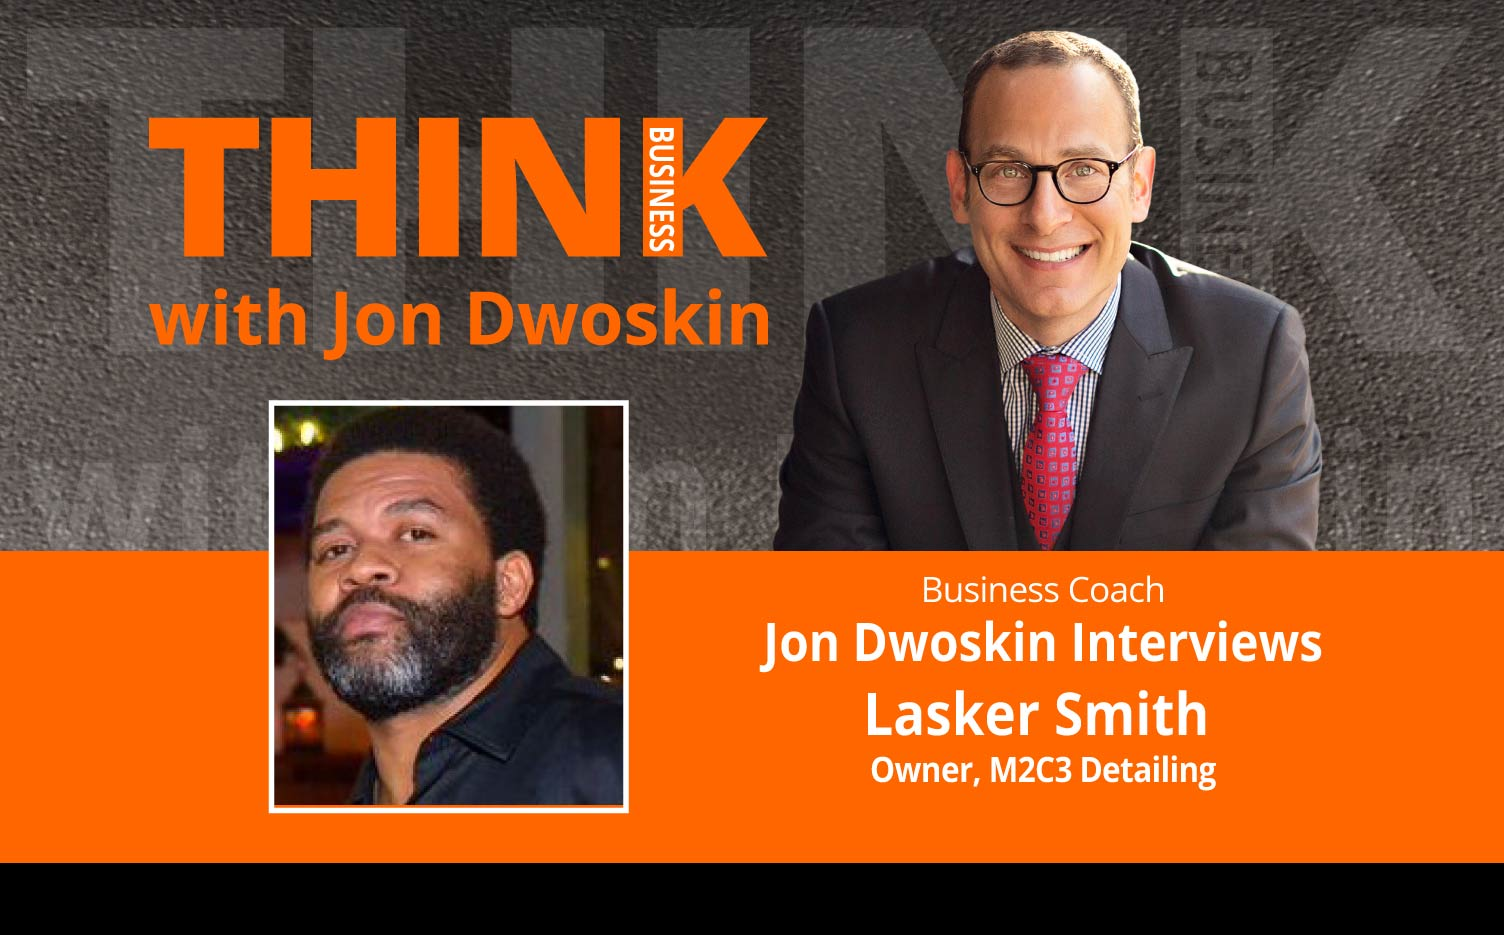 THINK Business Podcast: Jon Dwoskin Interviews Lasker Smith, Owner, M2C3 Detailing